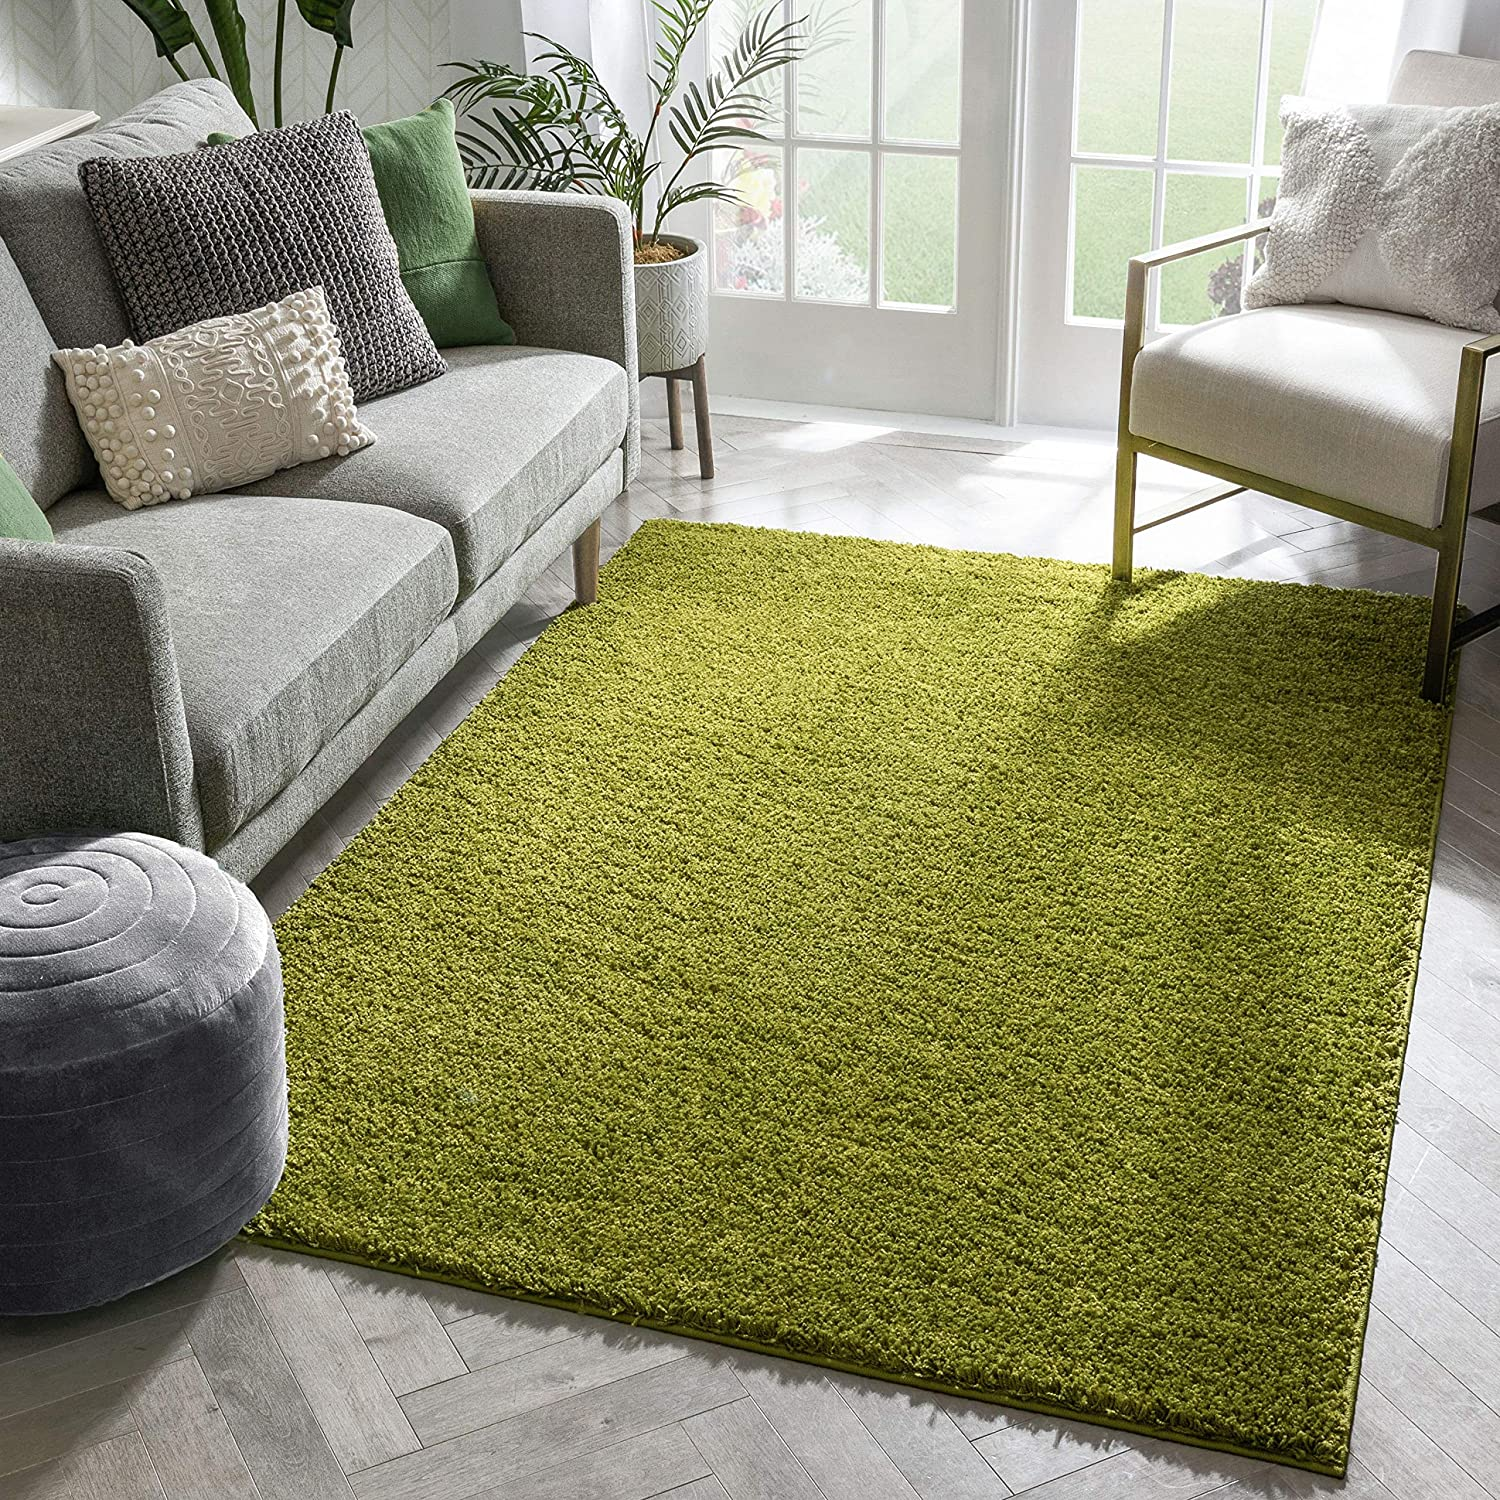 Well Woven Madison Shag Inventory Ranking TOP20 cleanup selling sale Plain Solid Gree Contemporary Light